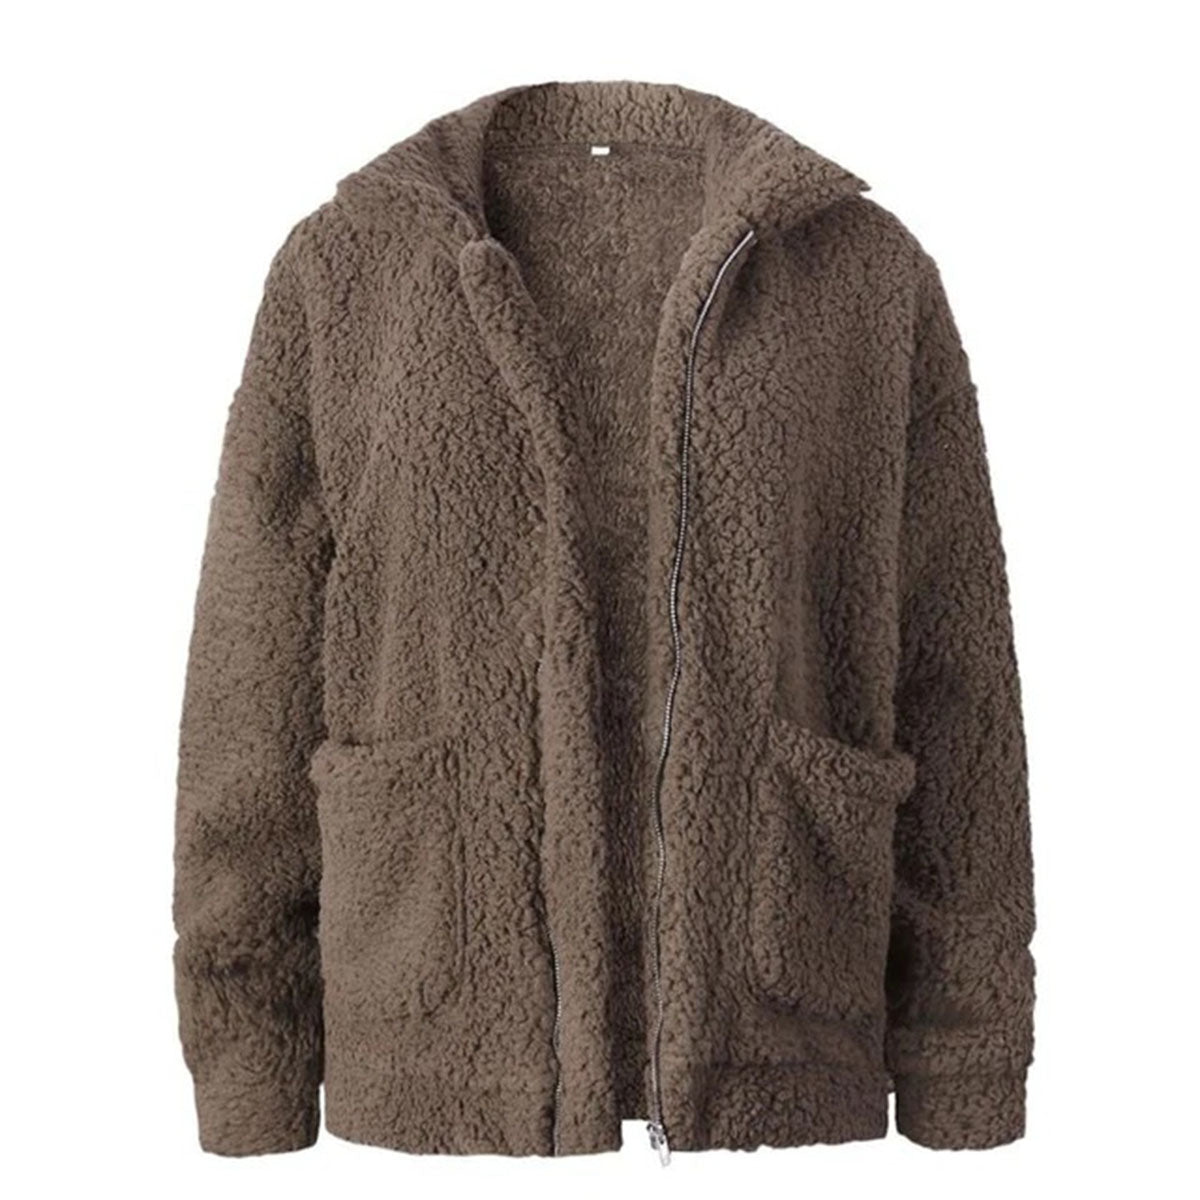 Elegant Women's Faux Fur Jacket for Autumn & Winter Wear